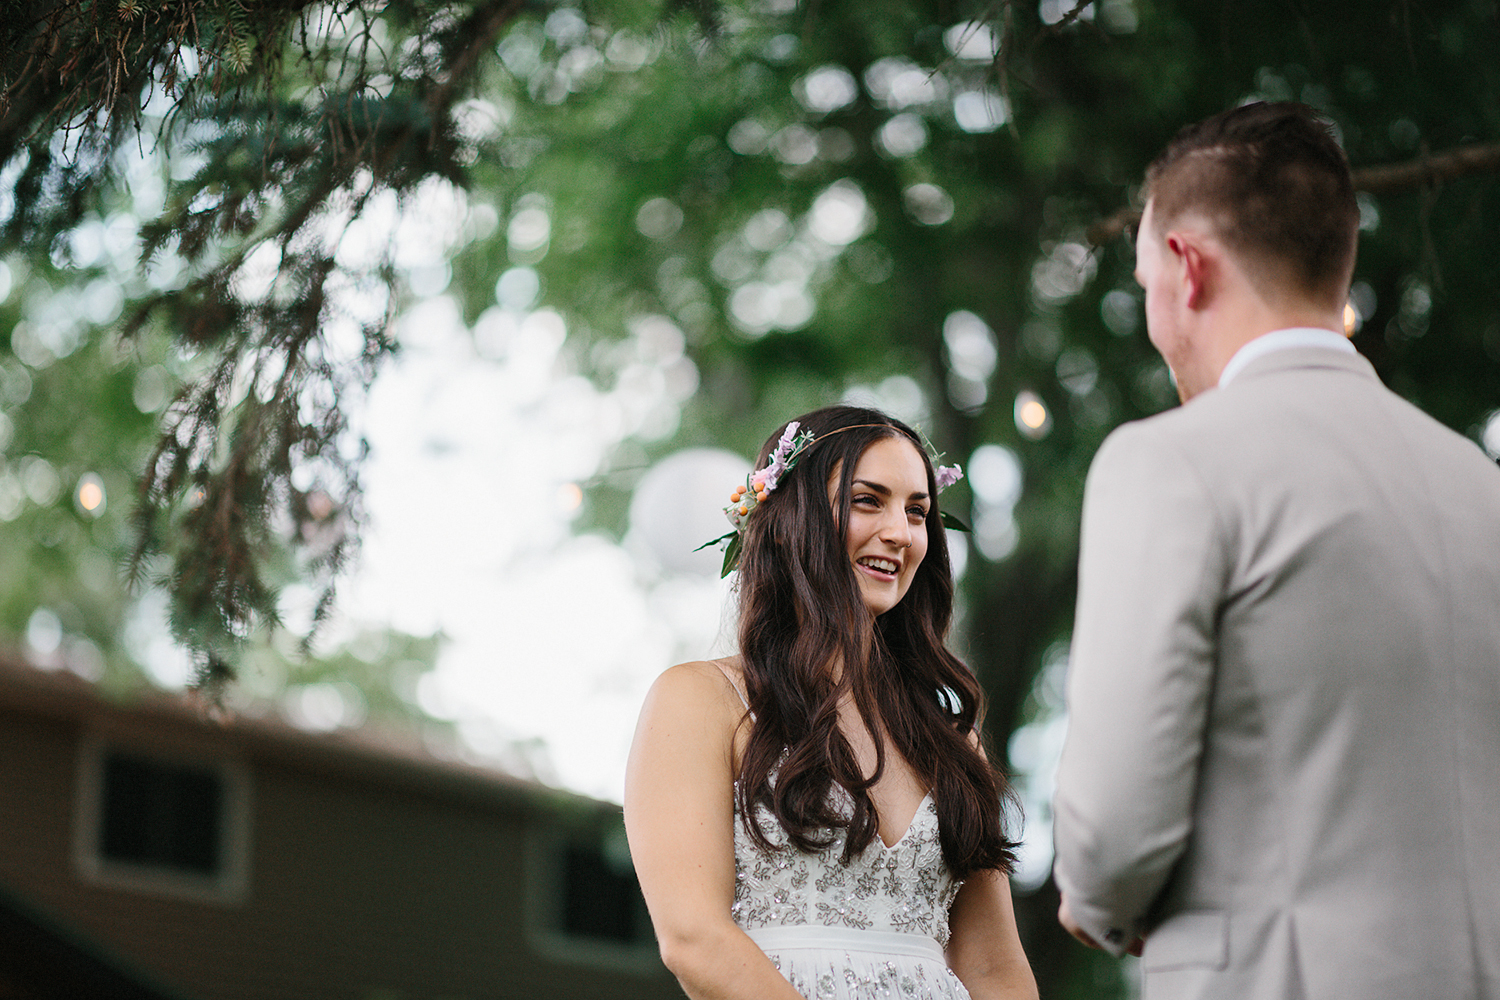 Backyard-family-intimate-cottage-wedding-chatum-kent-toronto-ontario-film-photographer-ryanne-hollies-photography-diy-string-lights-ceremony-space-lanterns-groom-and-bride-ring-exchange-emotional-vintage-bridal-style-with-flower-crown-.jpg